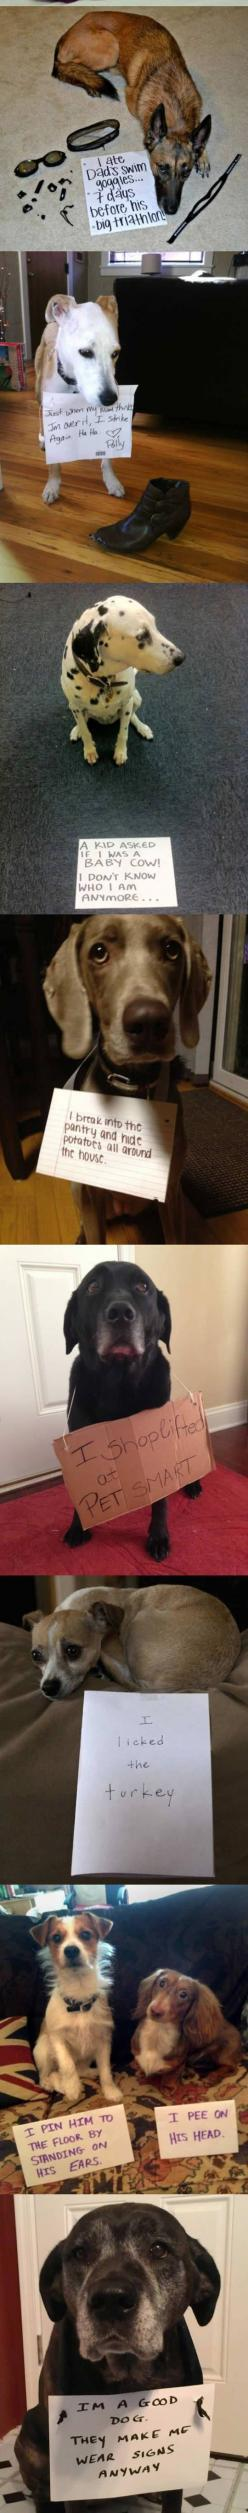 Haha so cute: Funny Animals, Cows Funny, Pet, Dogs Funny Shaming, Dog Shaming Funny, Baby Cows, Cute Funny Dogs, Funny Dog Shaming Signs, Dog Shame Signs